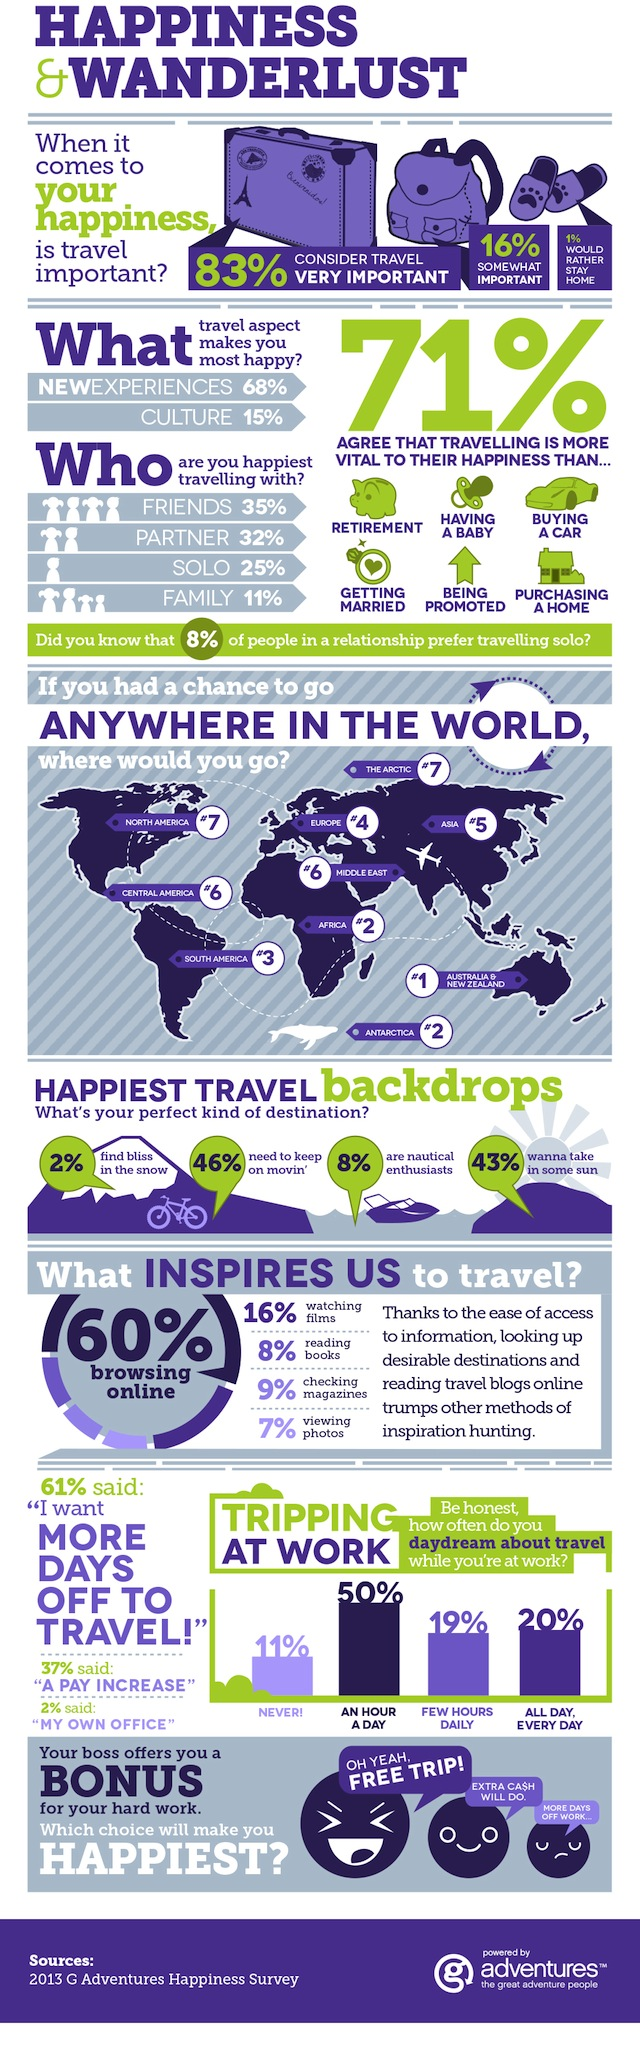 International Day of Happiness Infographic Why Travel Cultivates Happiness (INFOGRAPHIC)